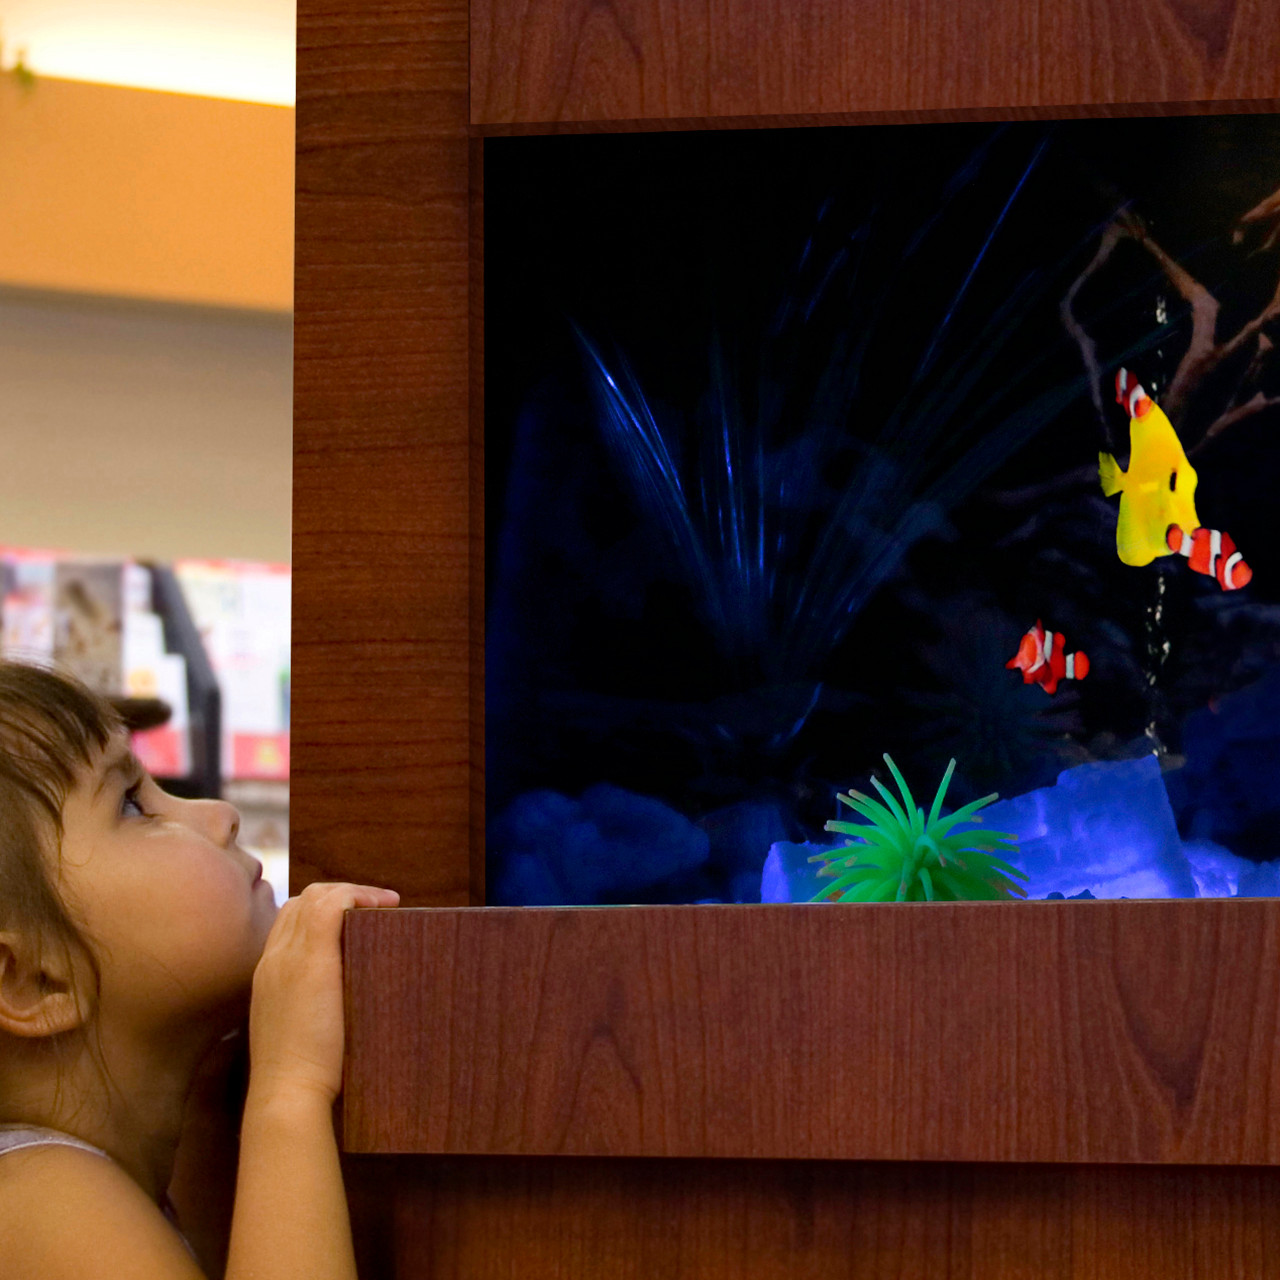 The Dimplex Opti-V uses unprecedented technology to render a virtual Aquarium experience.